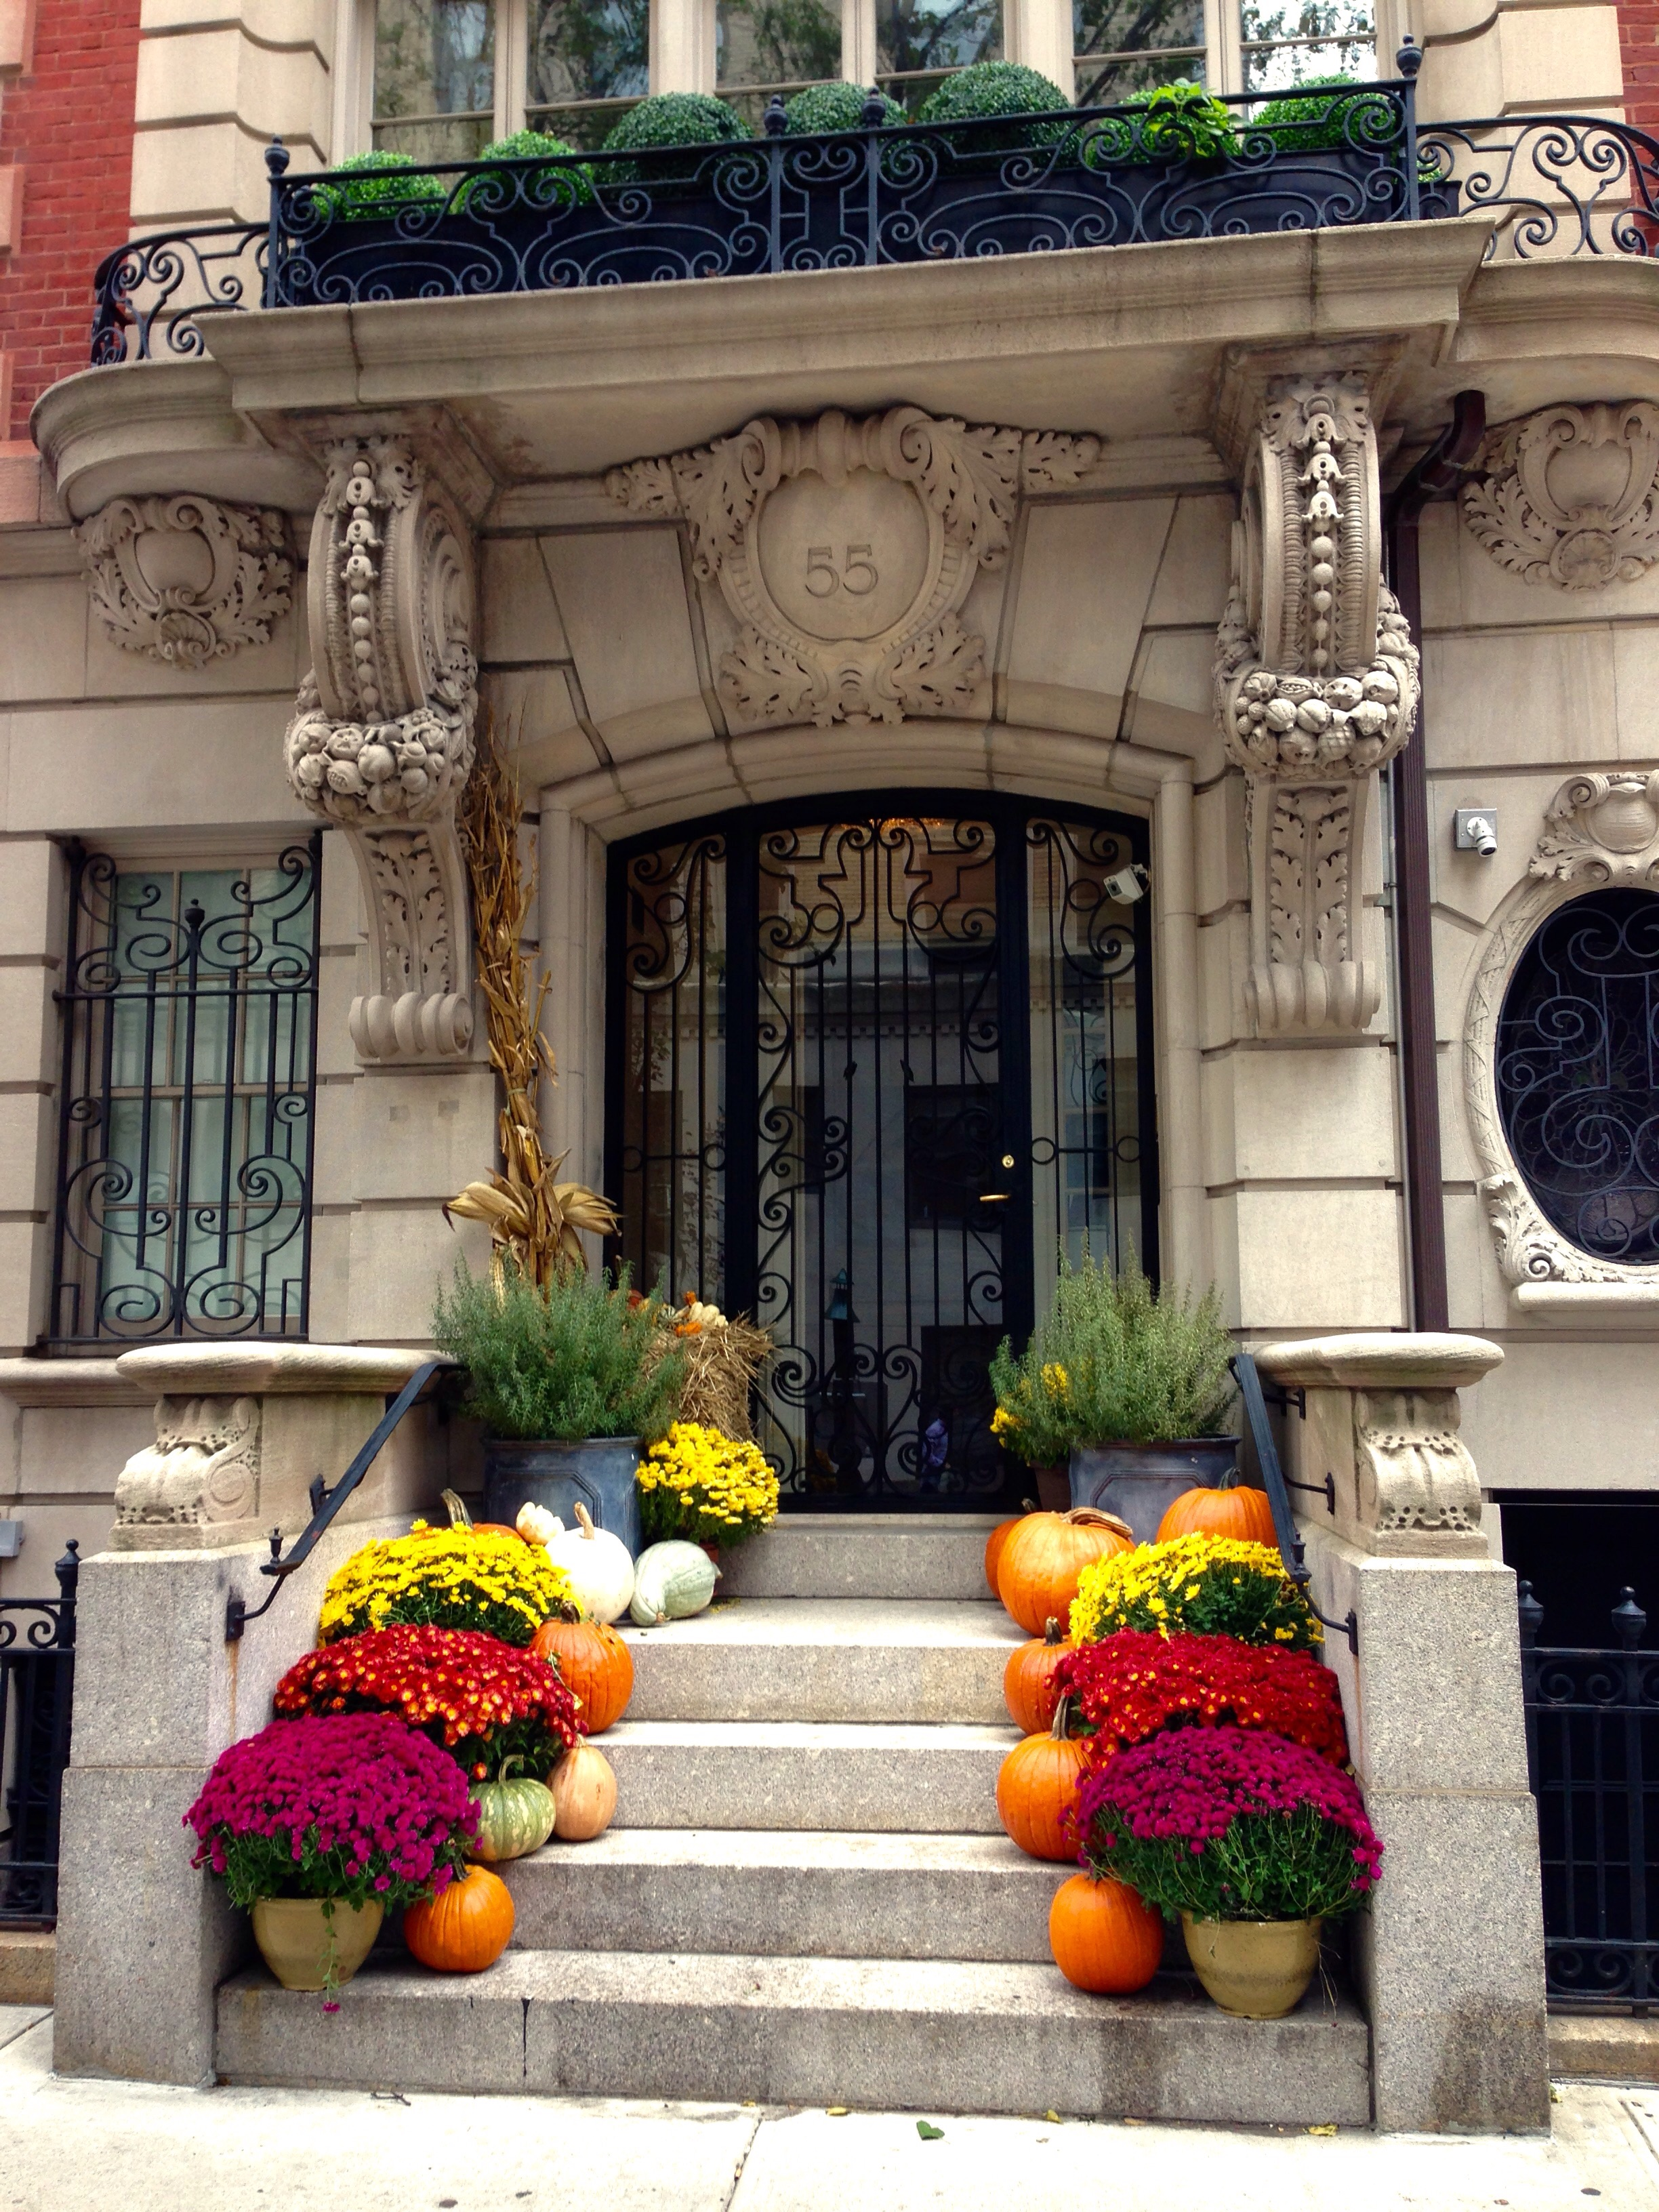 Fall decorations in full swing!